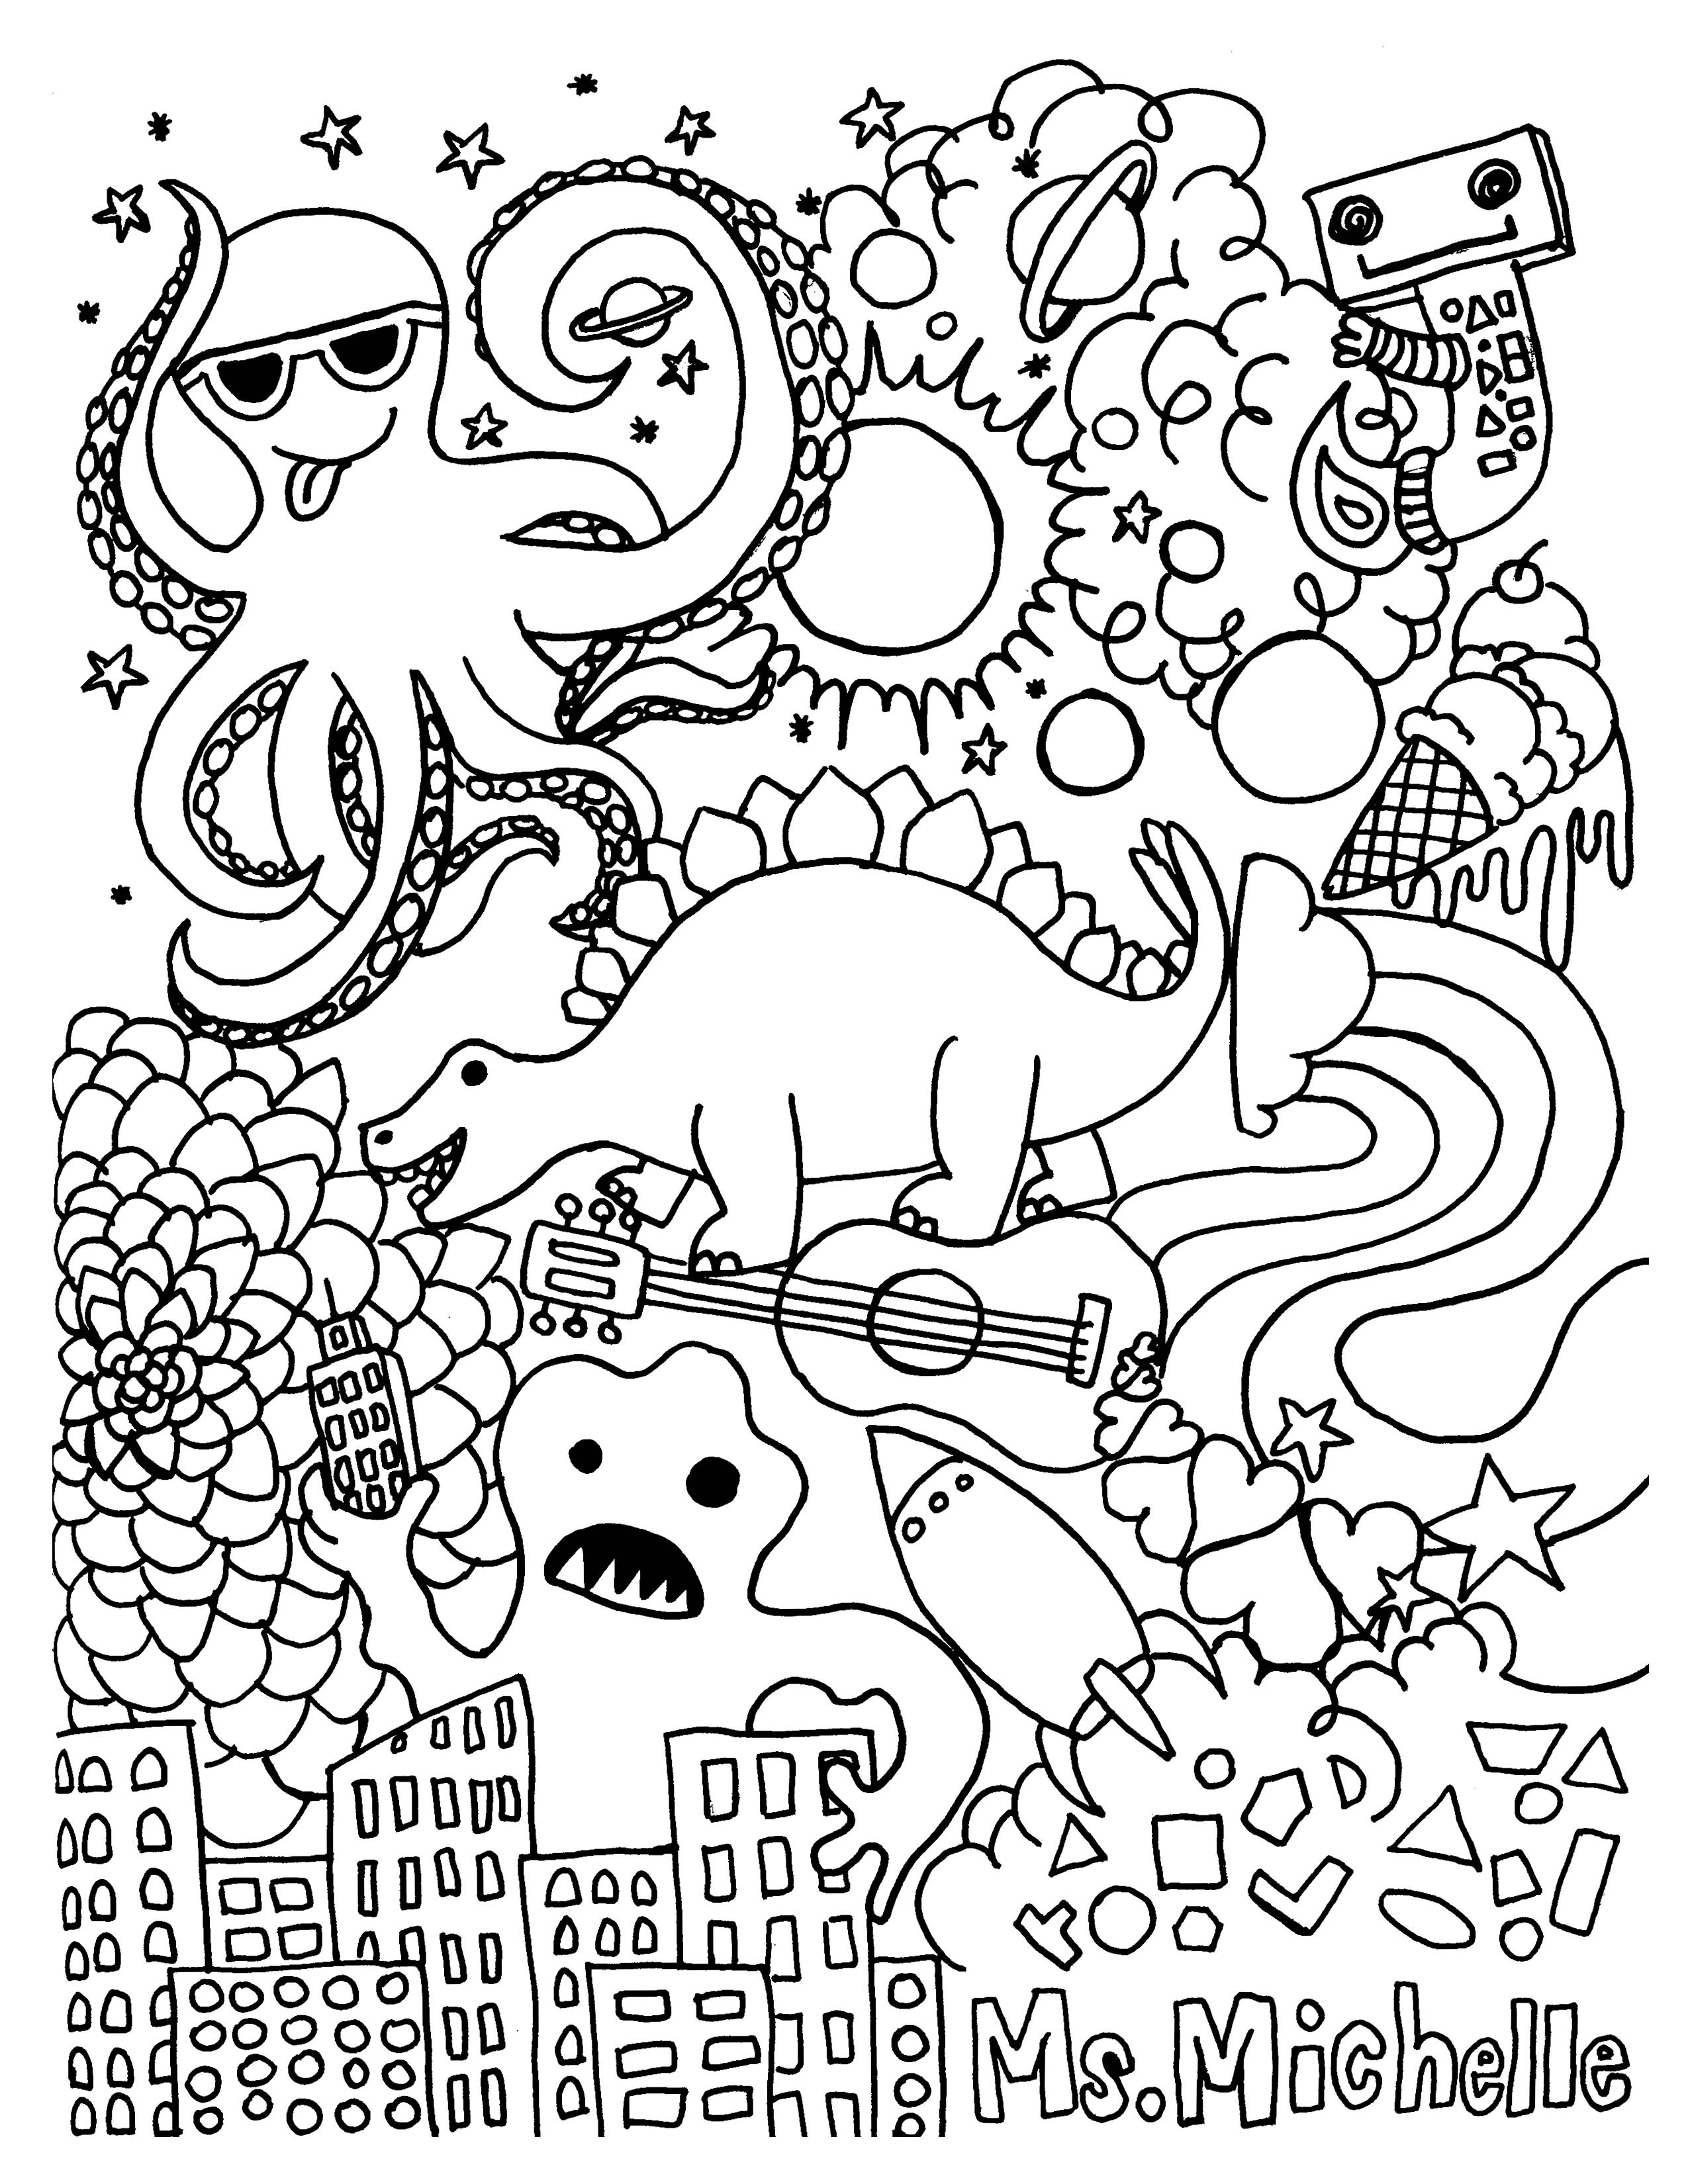 2nd grade coloring pages Collection-2nd Grade Coloring Pages 11-o